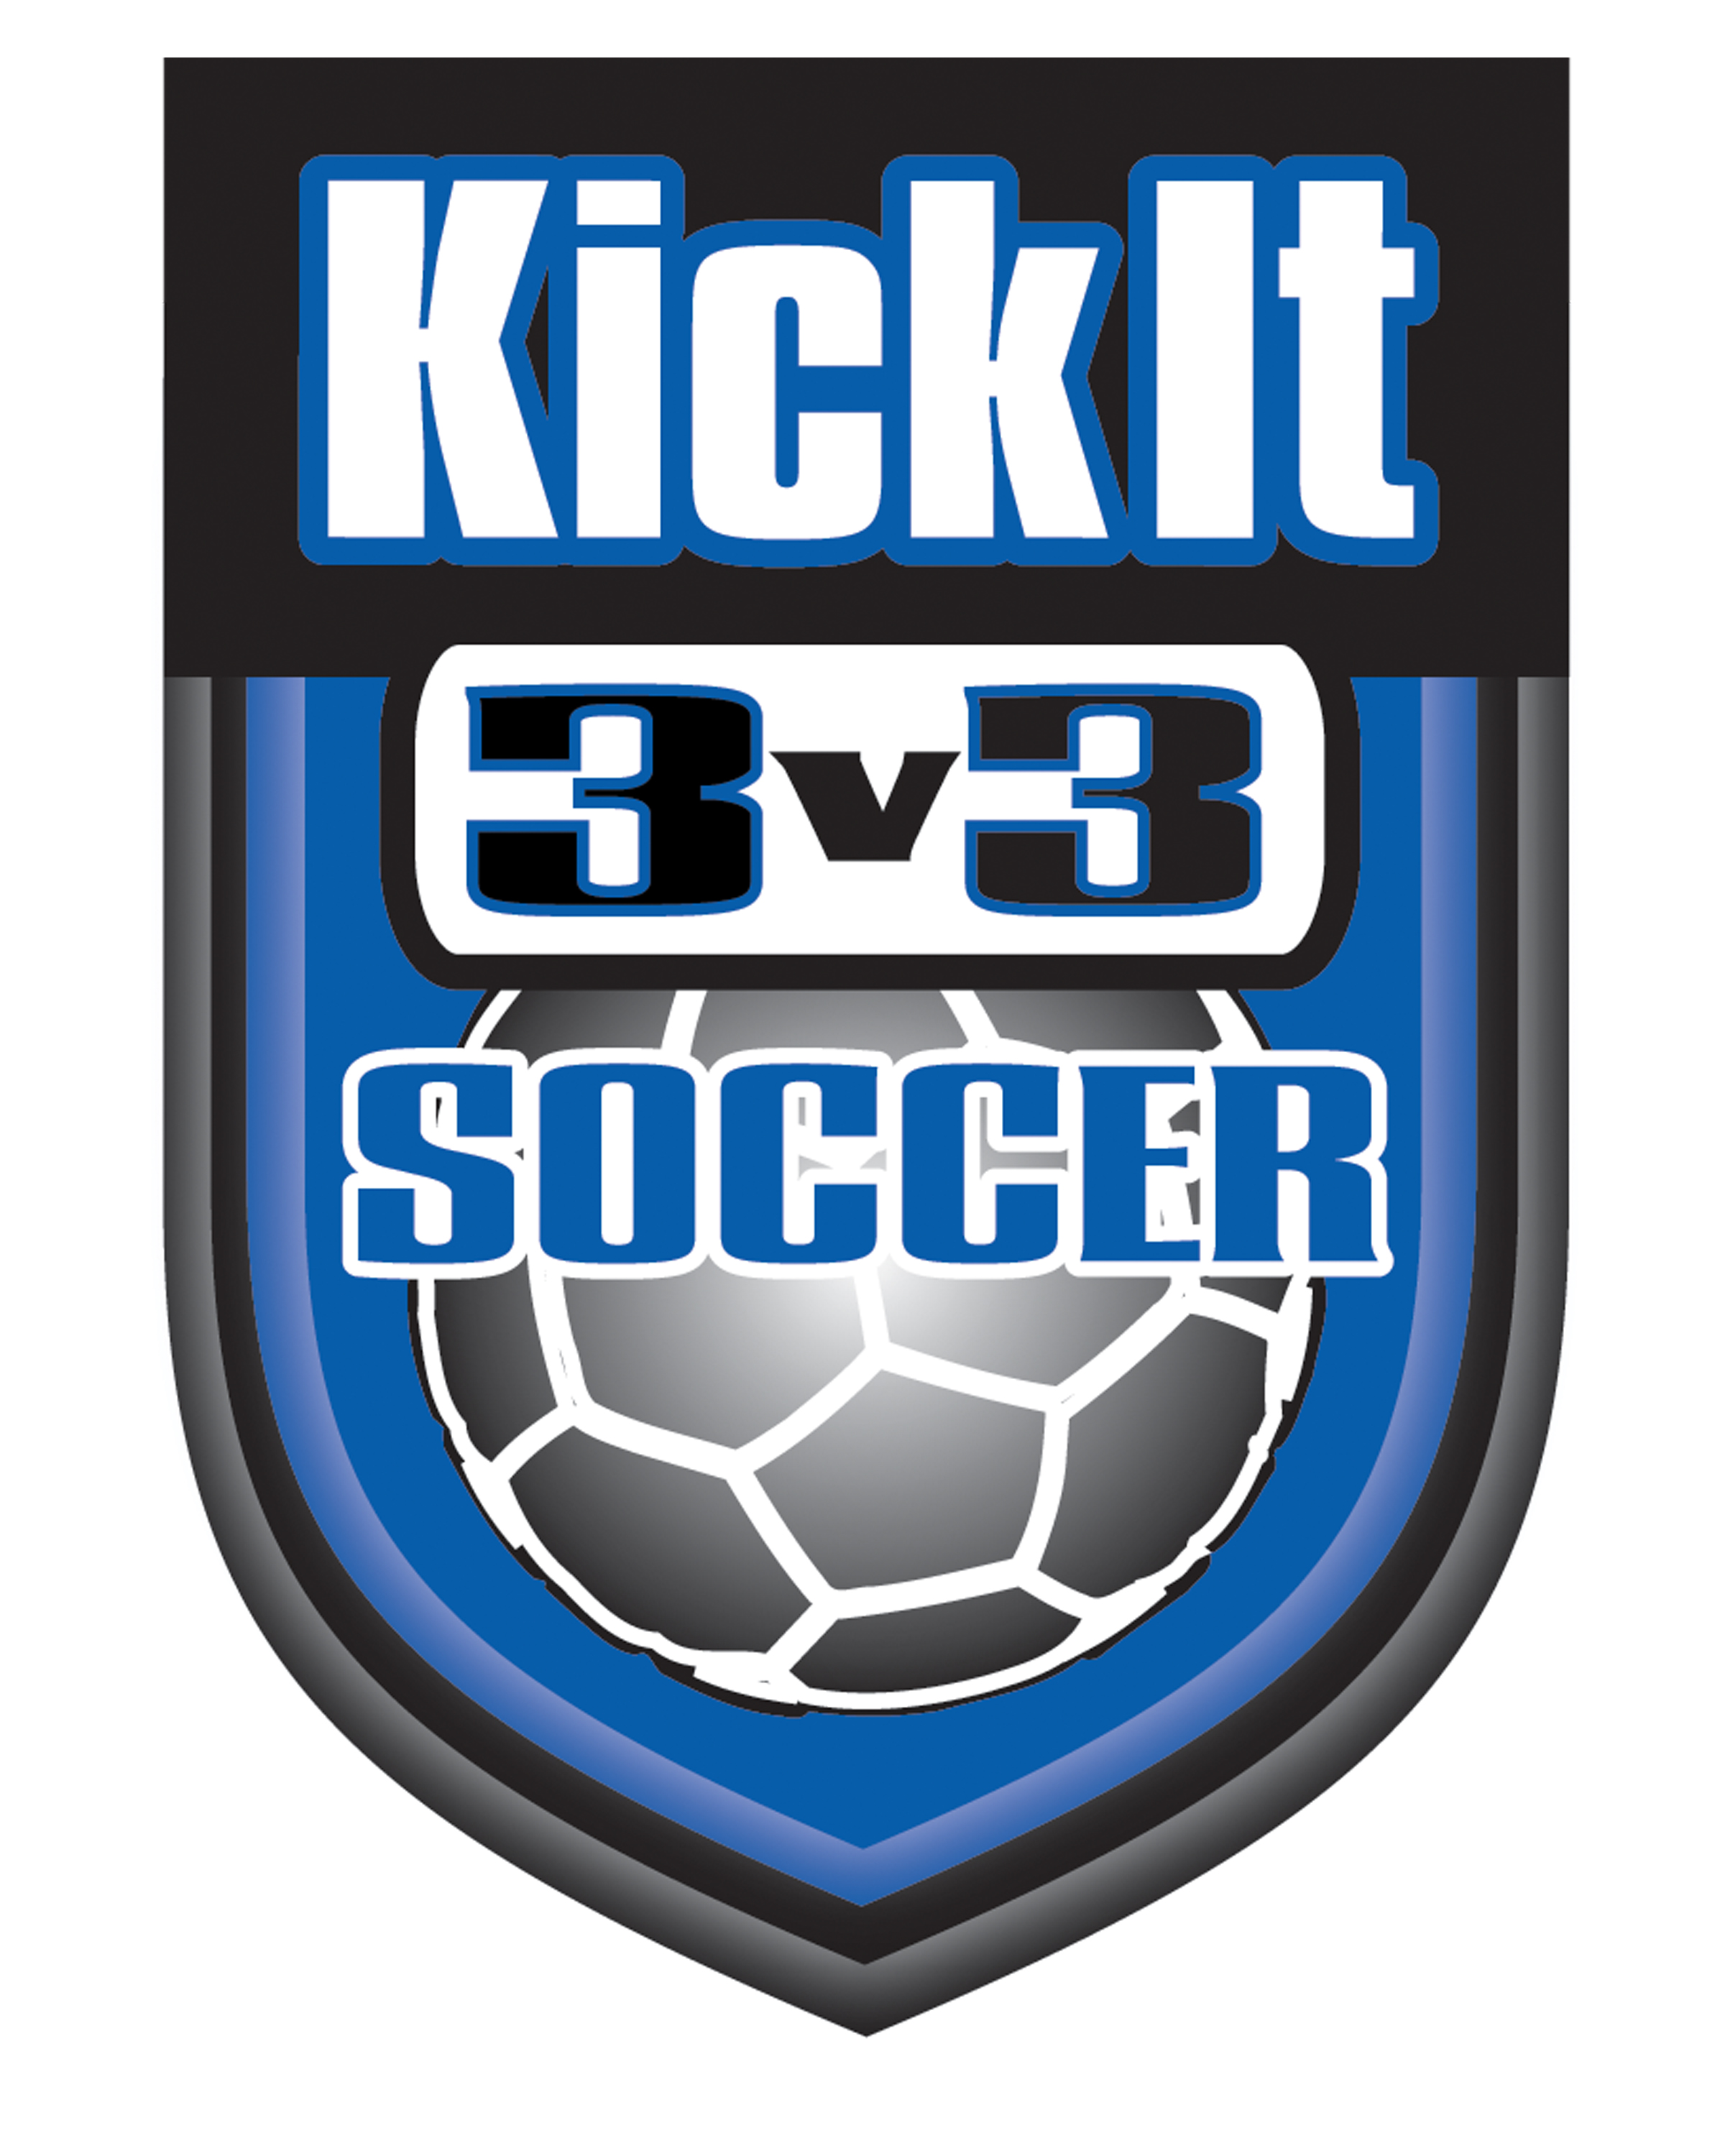 SoccerPalooza/Kick-It 3-v-3